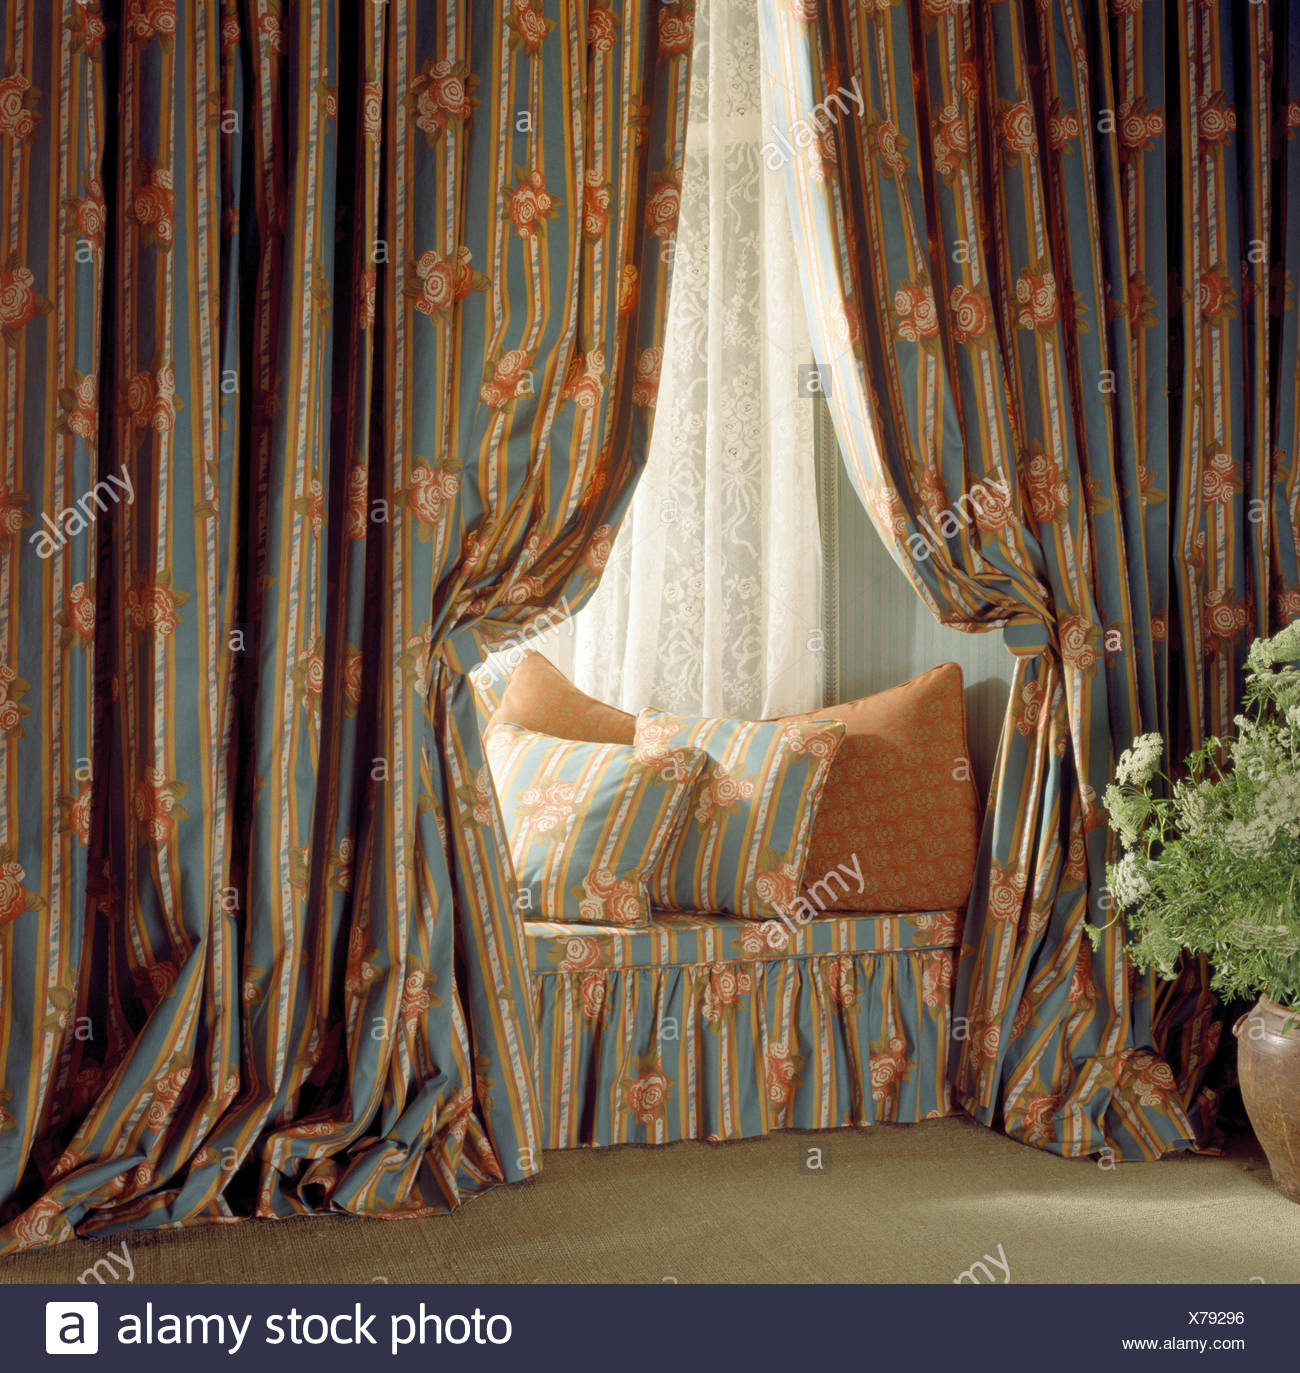 hang if gives separating drapes your privacy studio rest you in it from want heavy of more the apartment a formal room pin plus extra bedroom